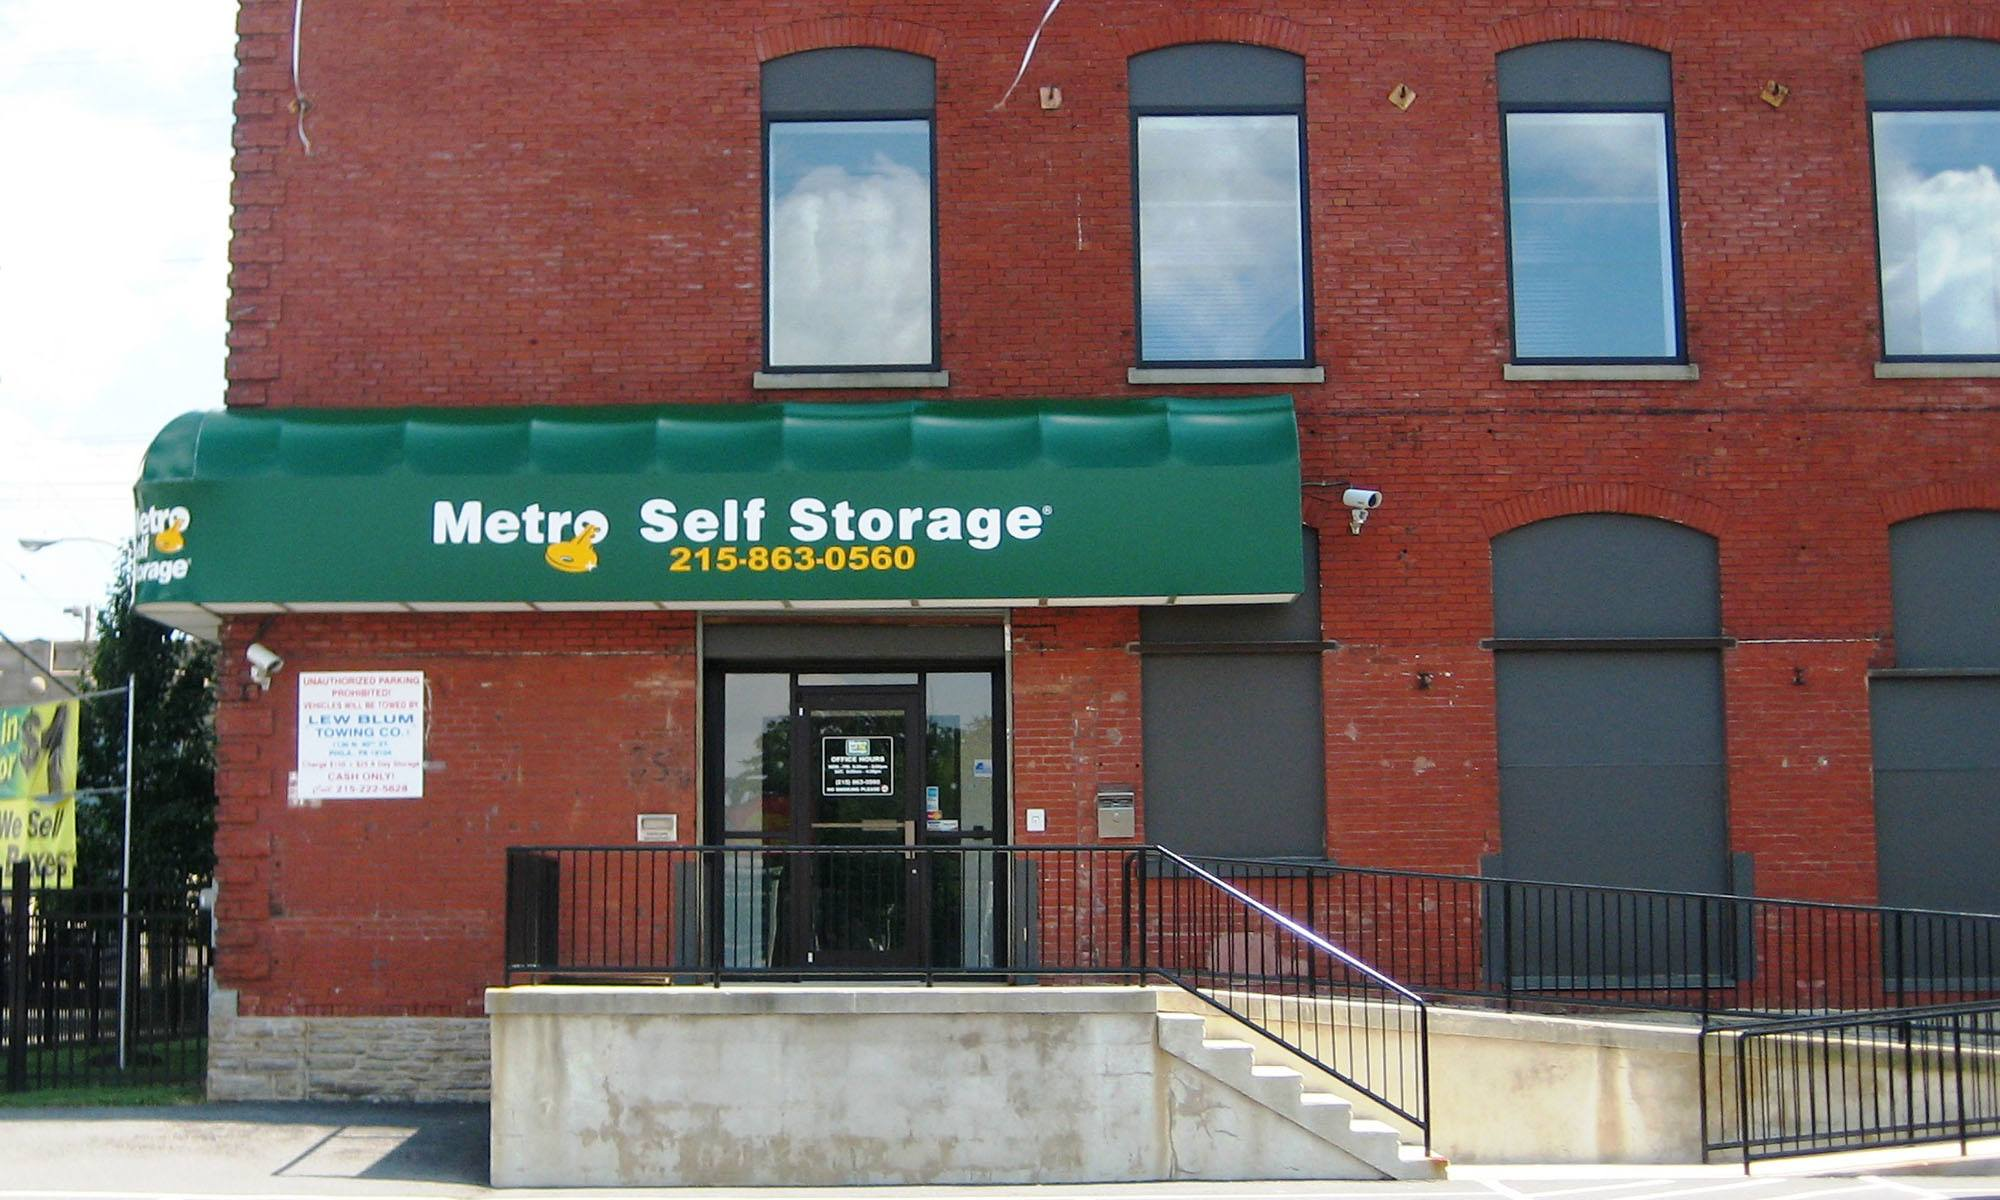 Metro Self Storage in Philadelphia, PA